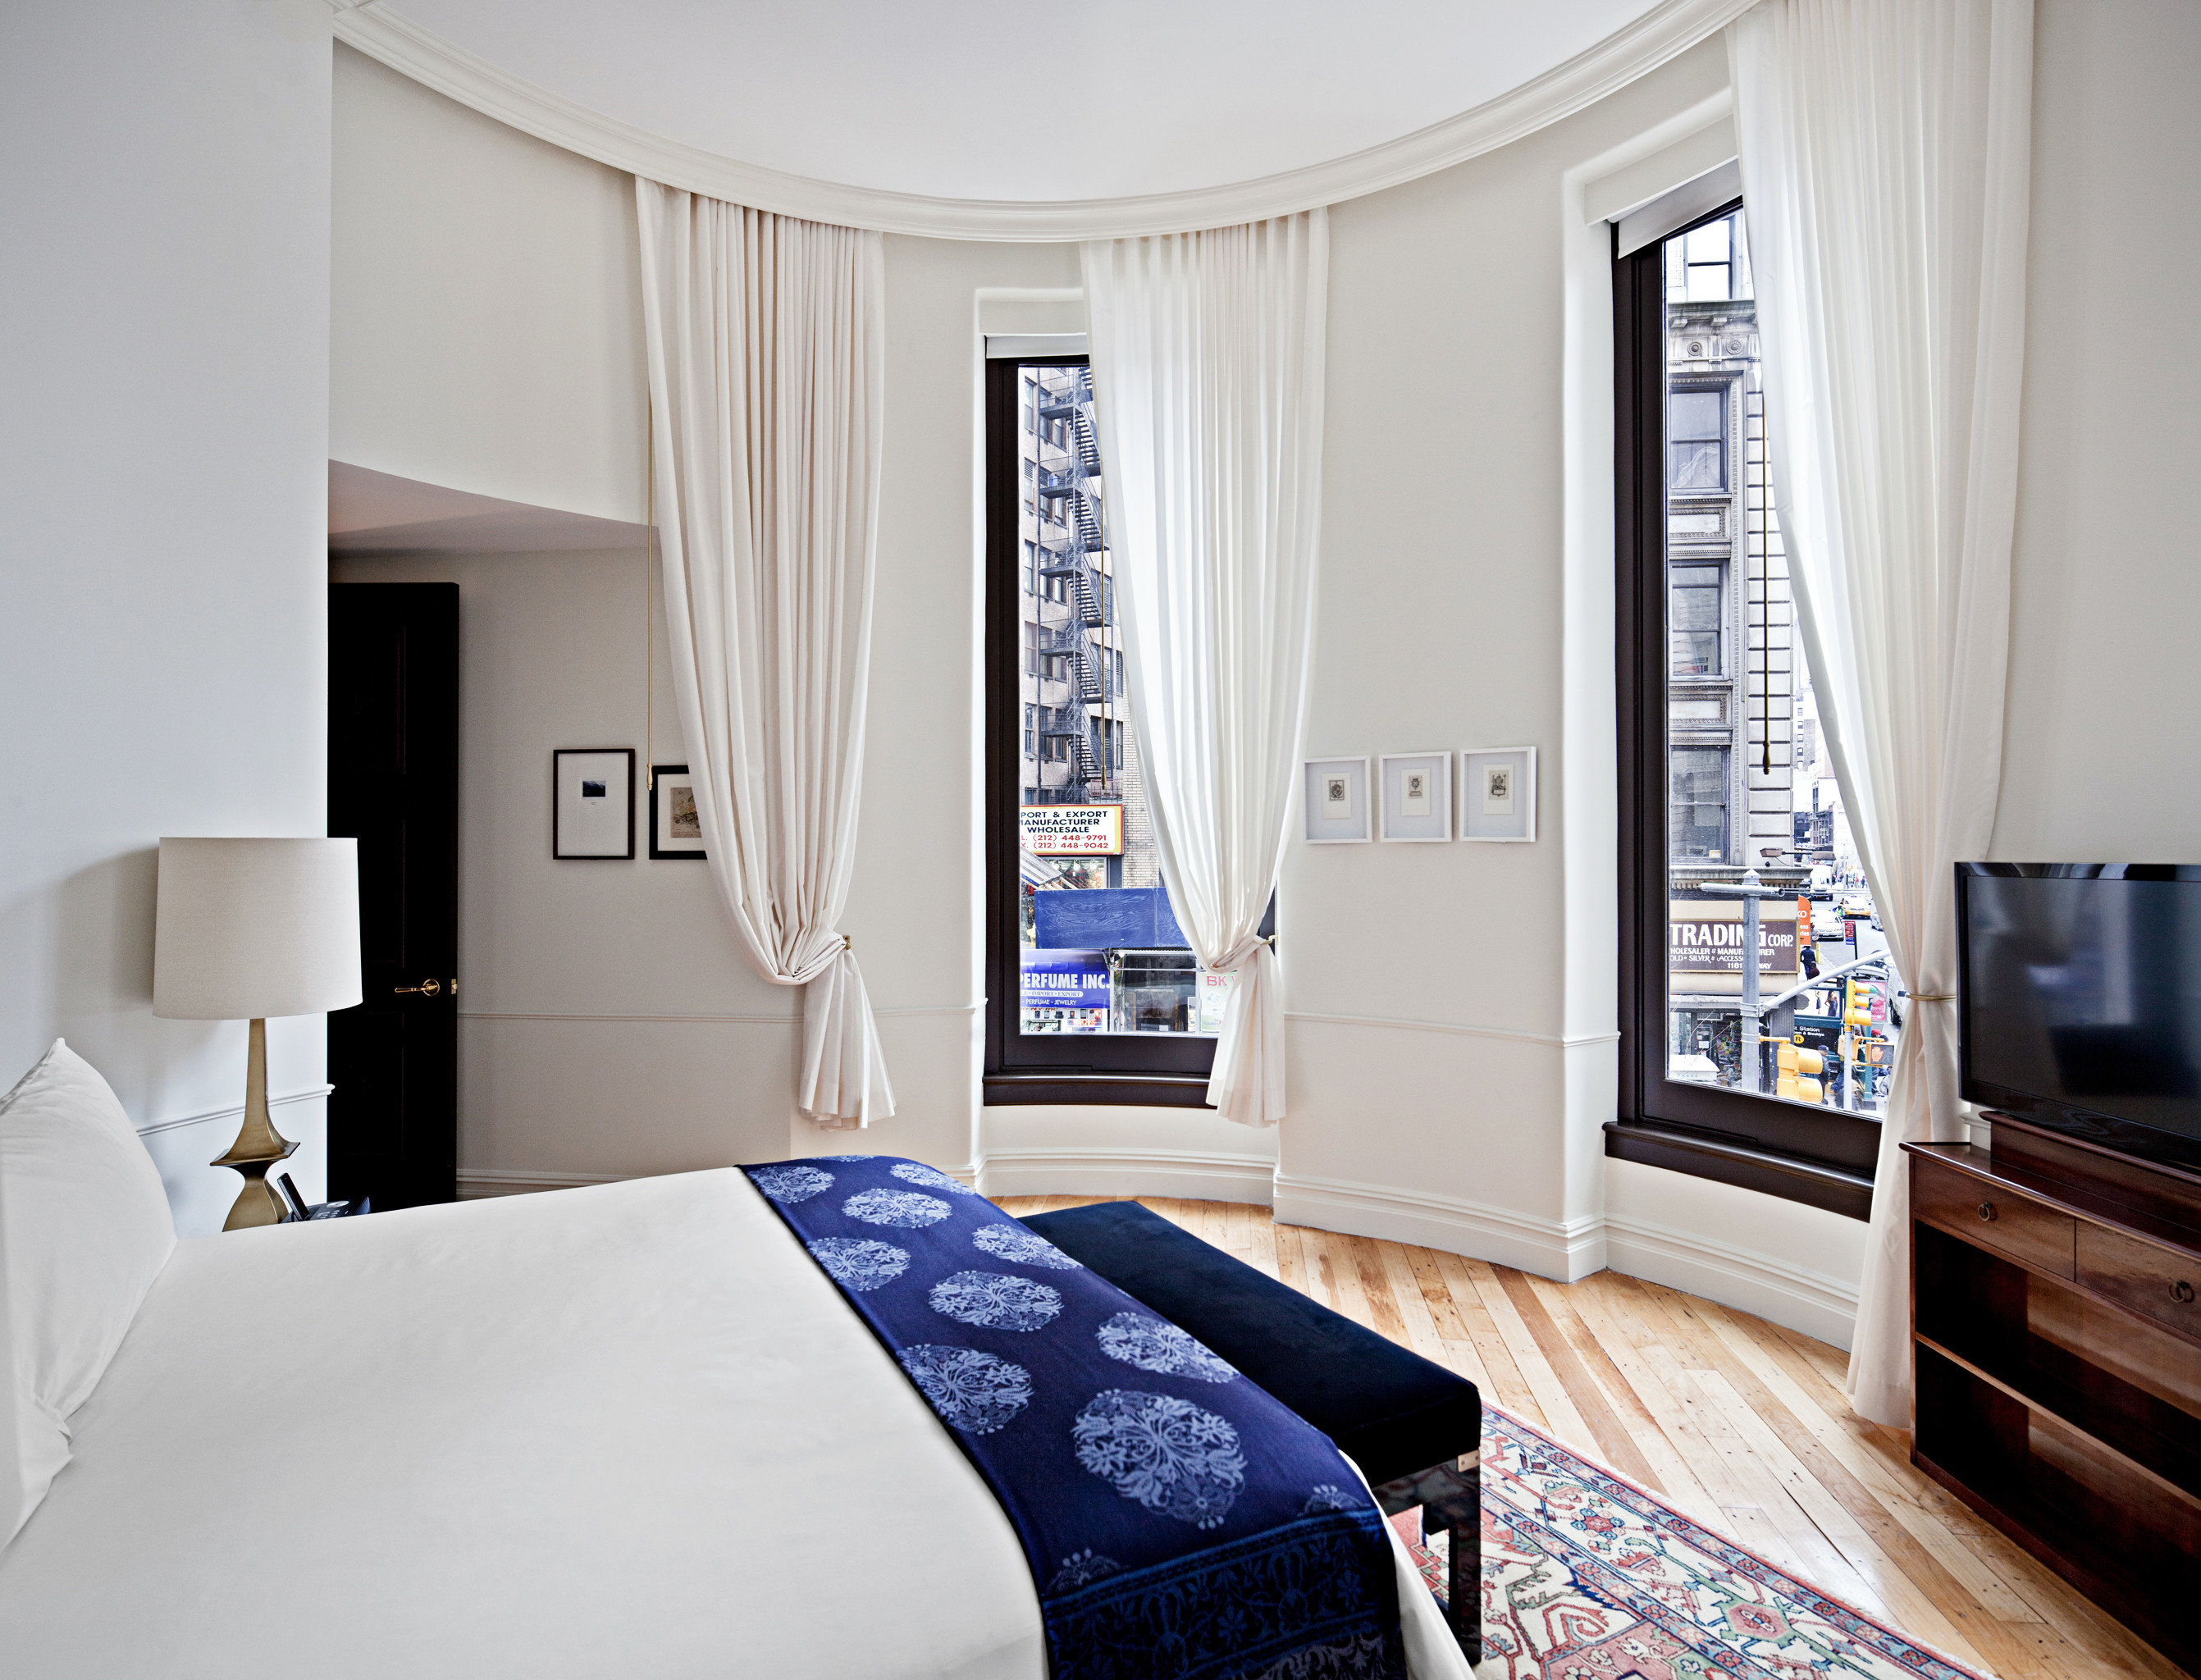 Bedroom City Hip Hotels Luxury Luxury Travel NYC Offbeat Romantic Hotels Trip Ideas property home living room cottage Suite textile